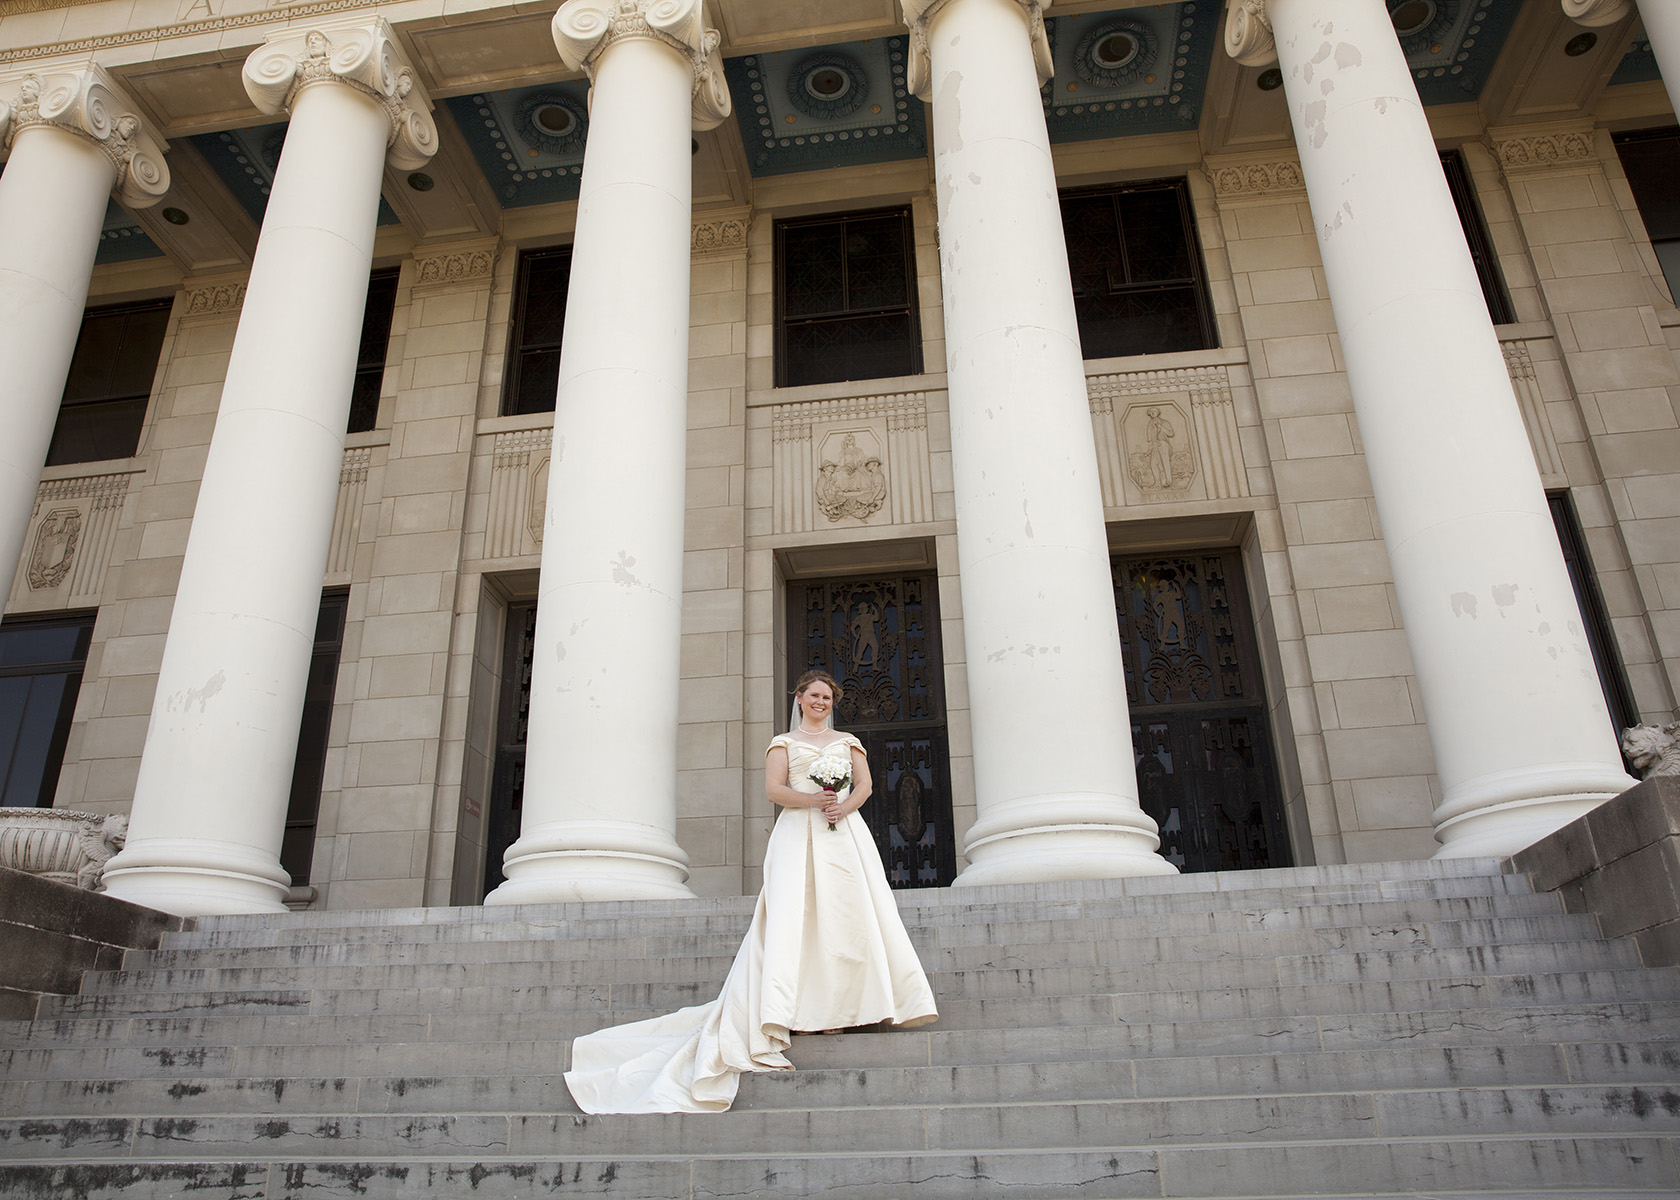 Aggie wedding photographer